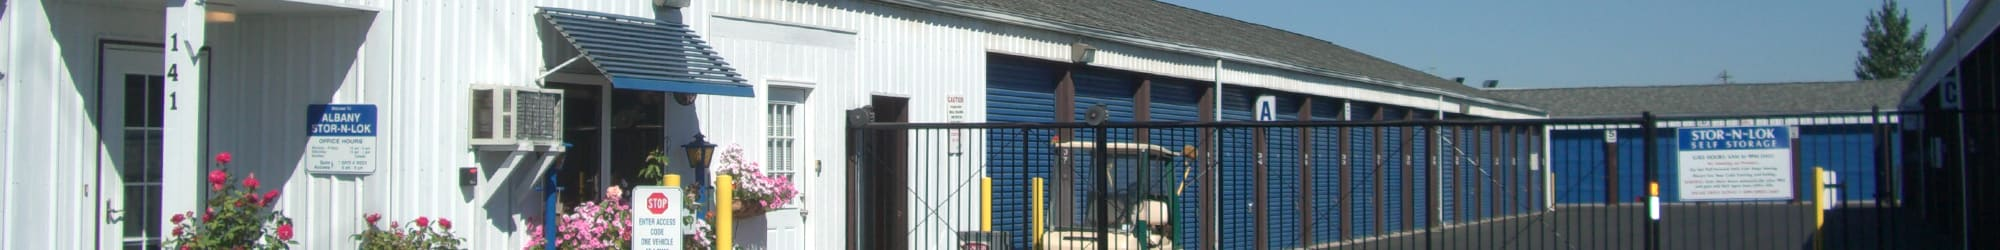 Storage units in Albany, OR